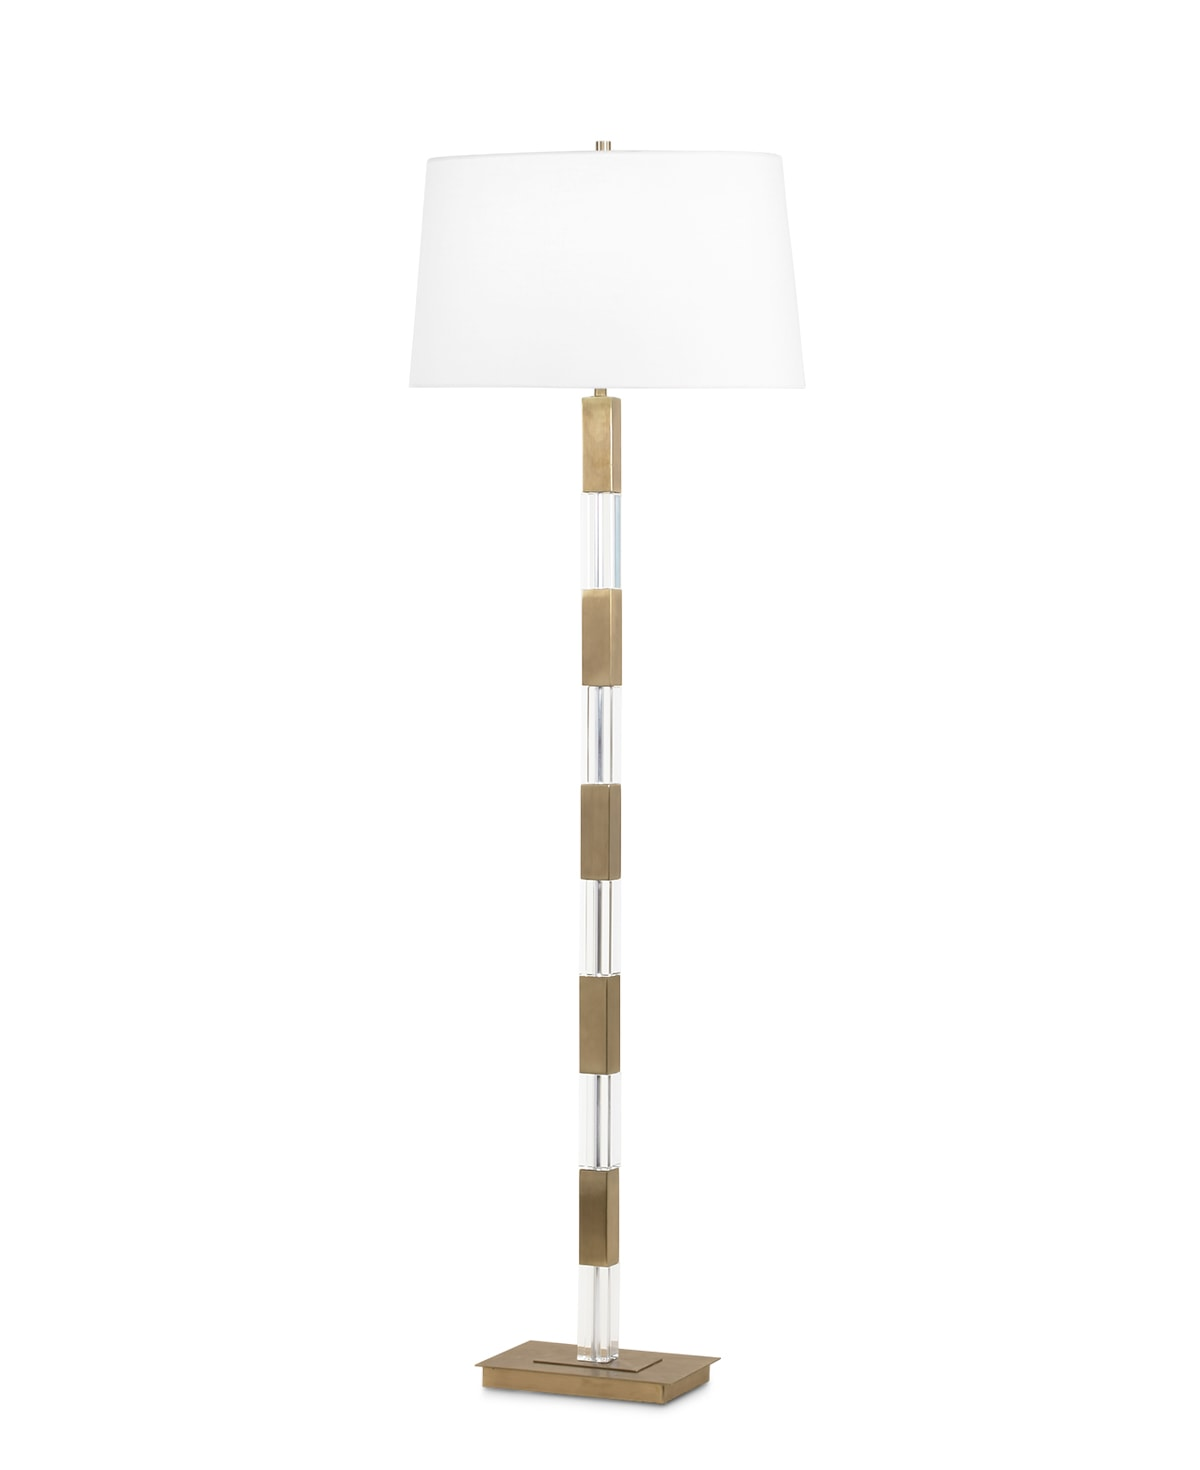 FlowDecor Elm Floor Lamp in crystal and metal with antique brass finish and off-white linen oval shade (# 3638)